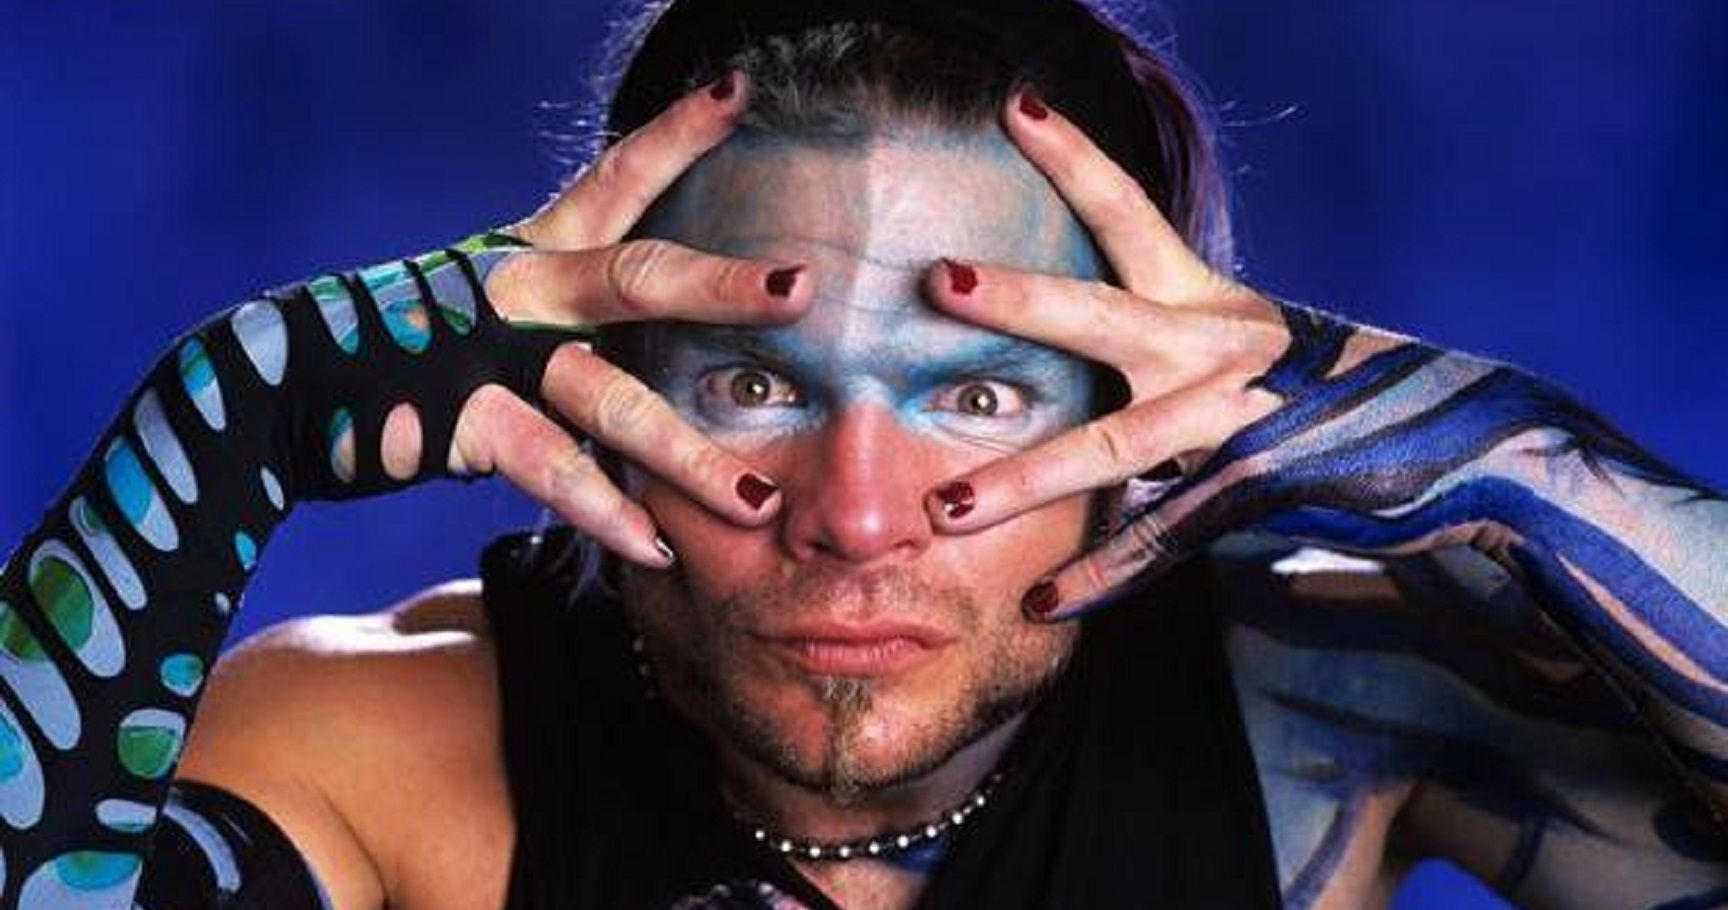 Top 15 Reasons Wwe Should Not Bring Jeff Hardy Back